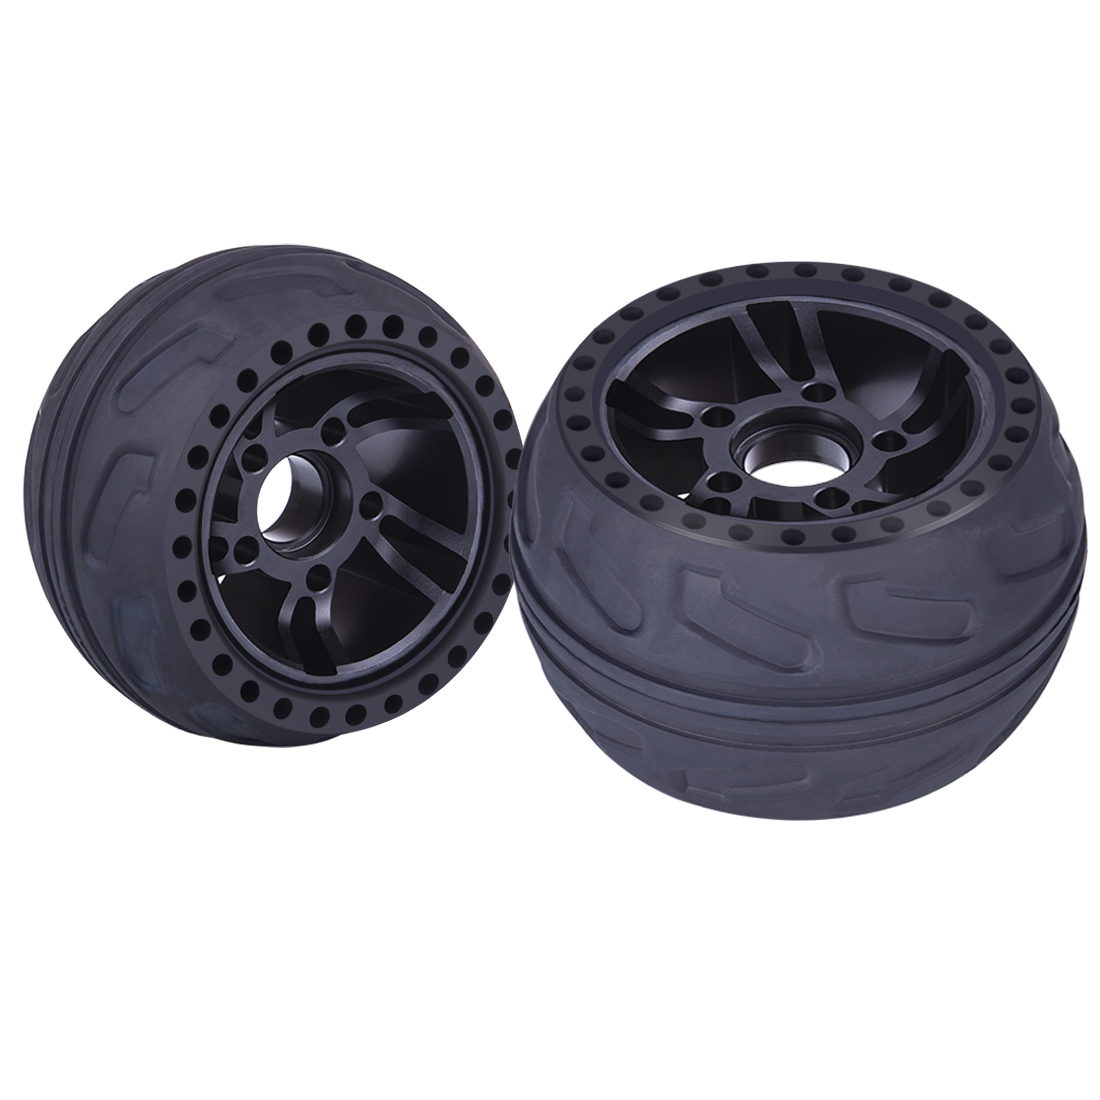 2Pcs/set 105LMH All Terrain Wheel Rubber Tire Skateboard Accessories For Outdoor Fun - Black//Red